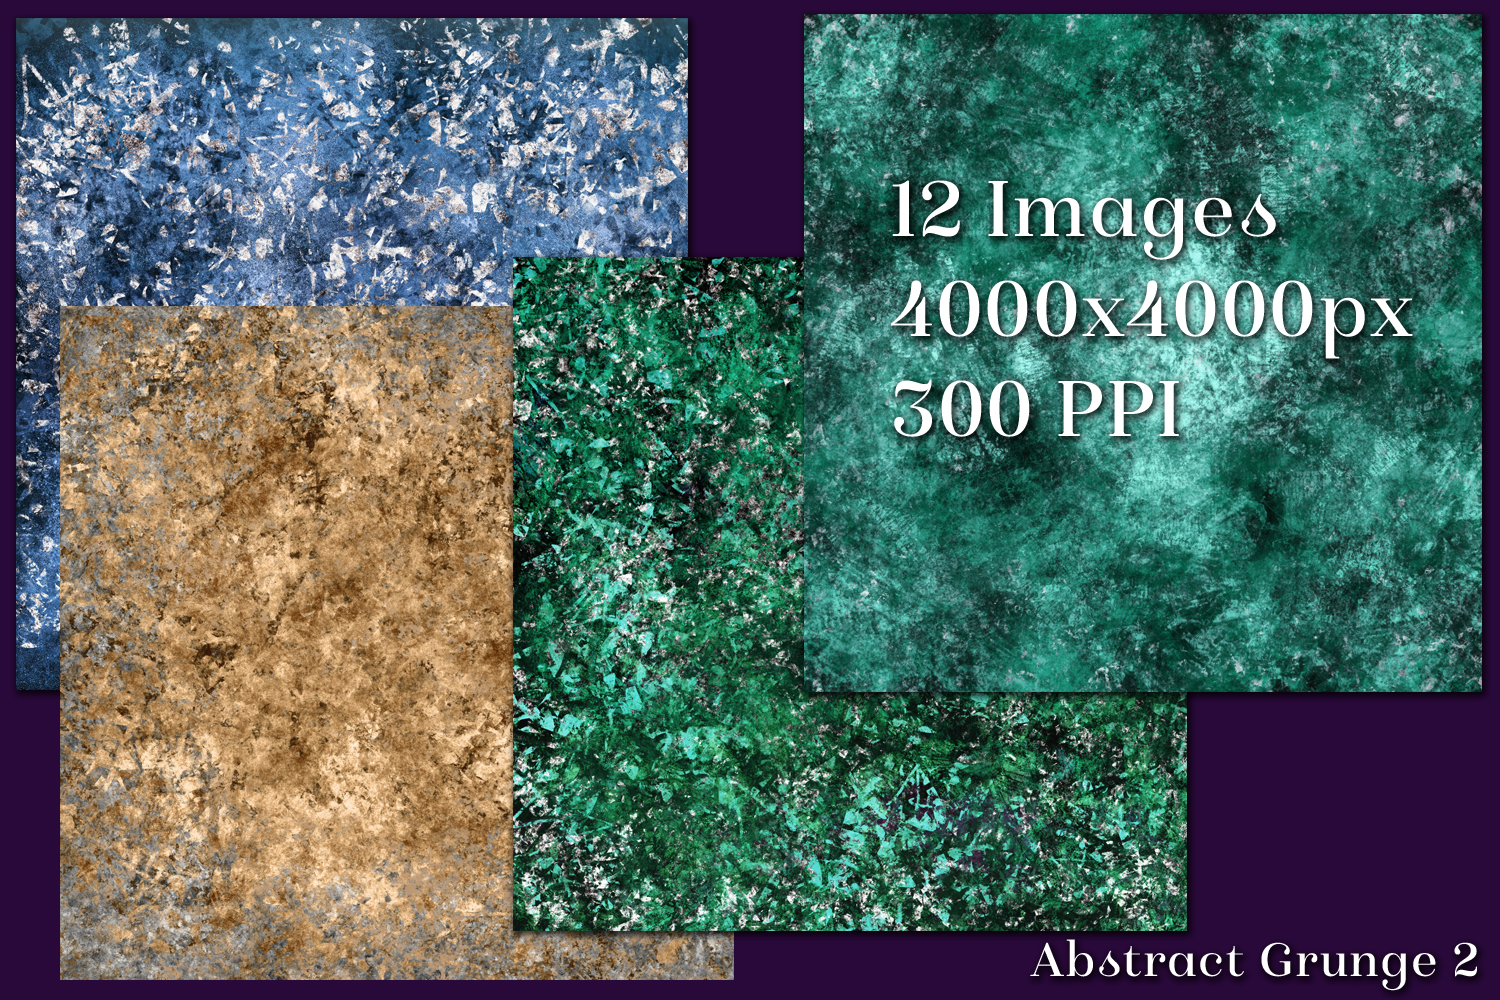 Abstract Grunge 2 Backgrounds - 12 Image Set example image 2